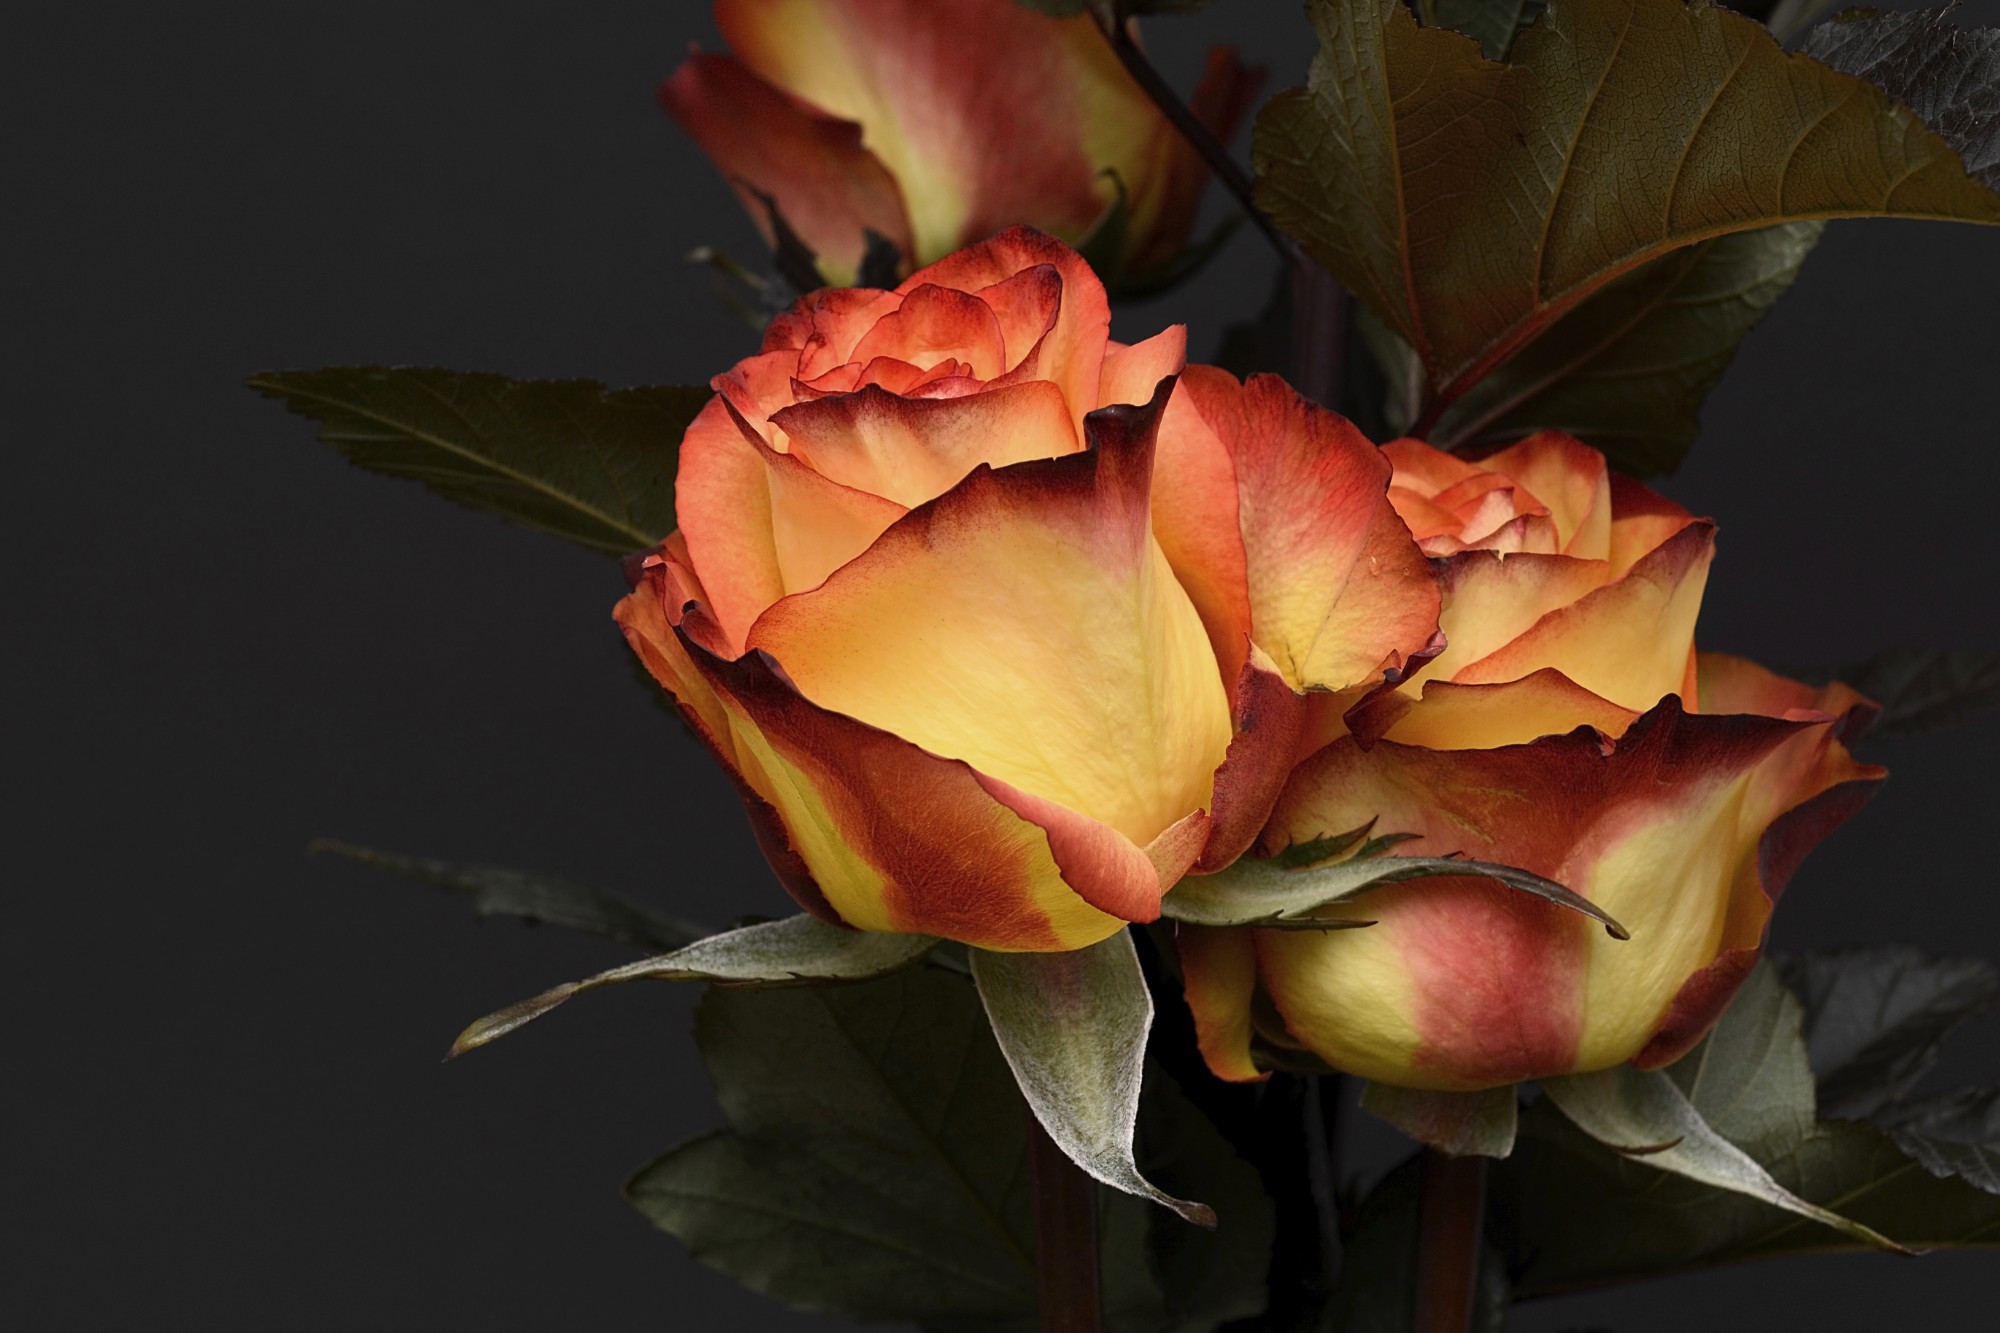 Romantic flowers and their meanings